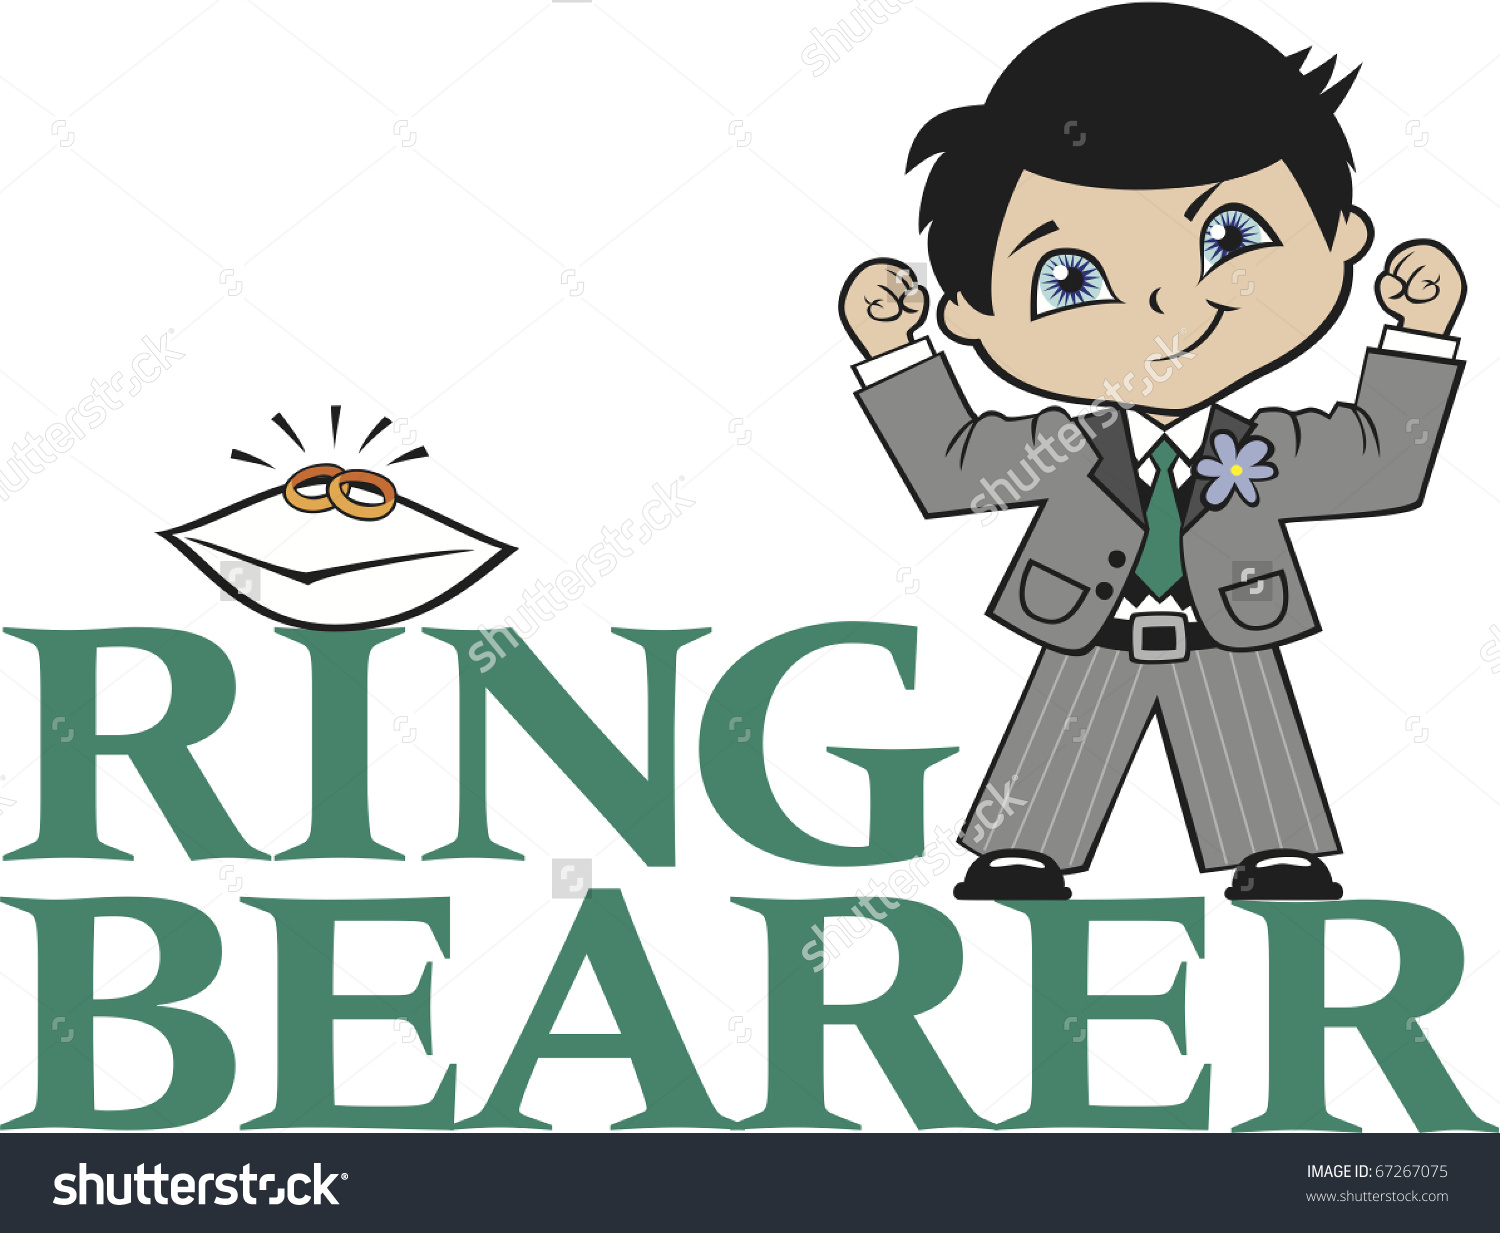 Bearer clipart - Clipground